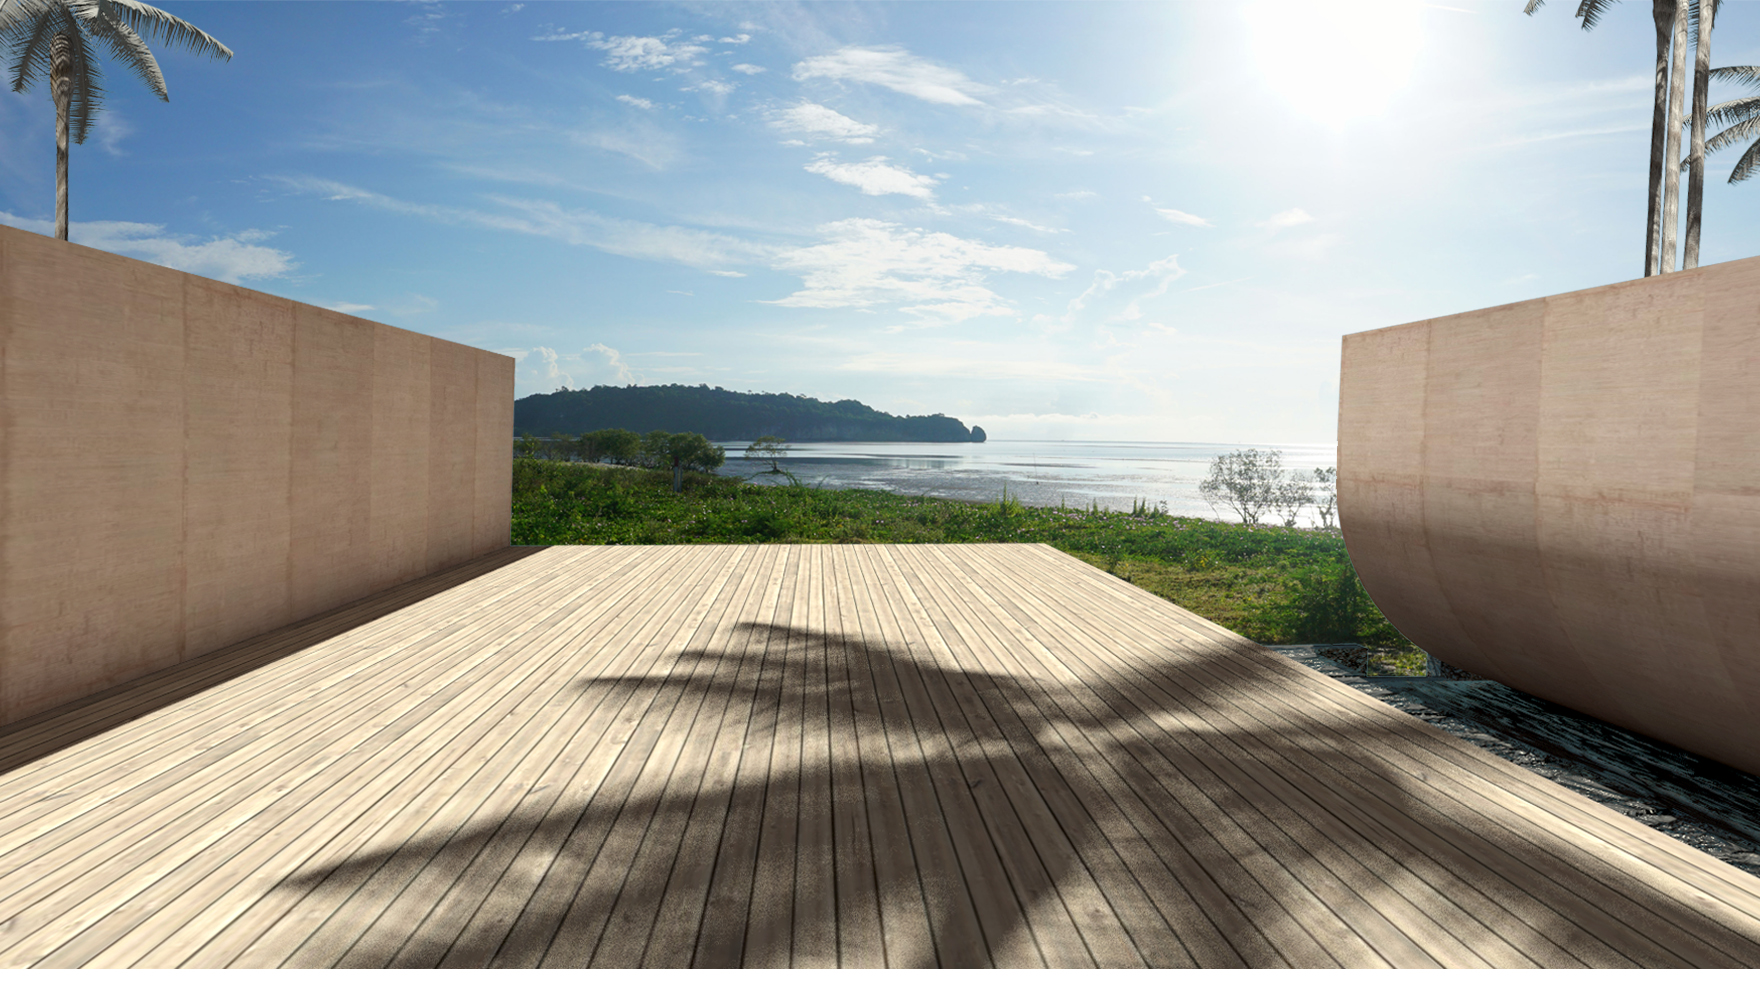 spatial practice architecture office hong kong los angeles - acts hotel private villas sea view hua hin thailand